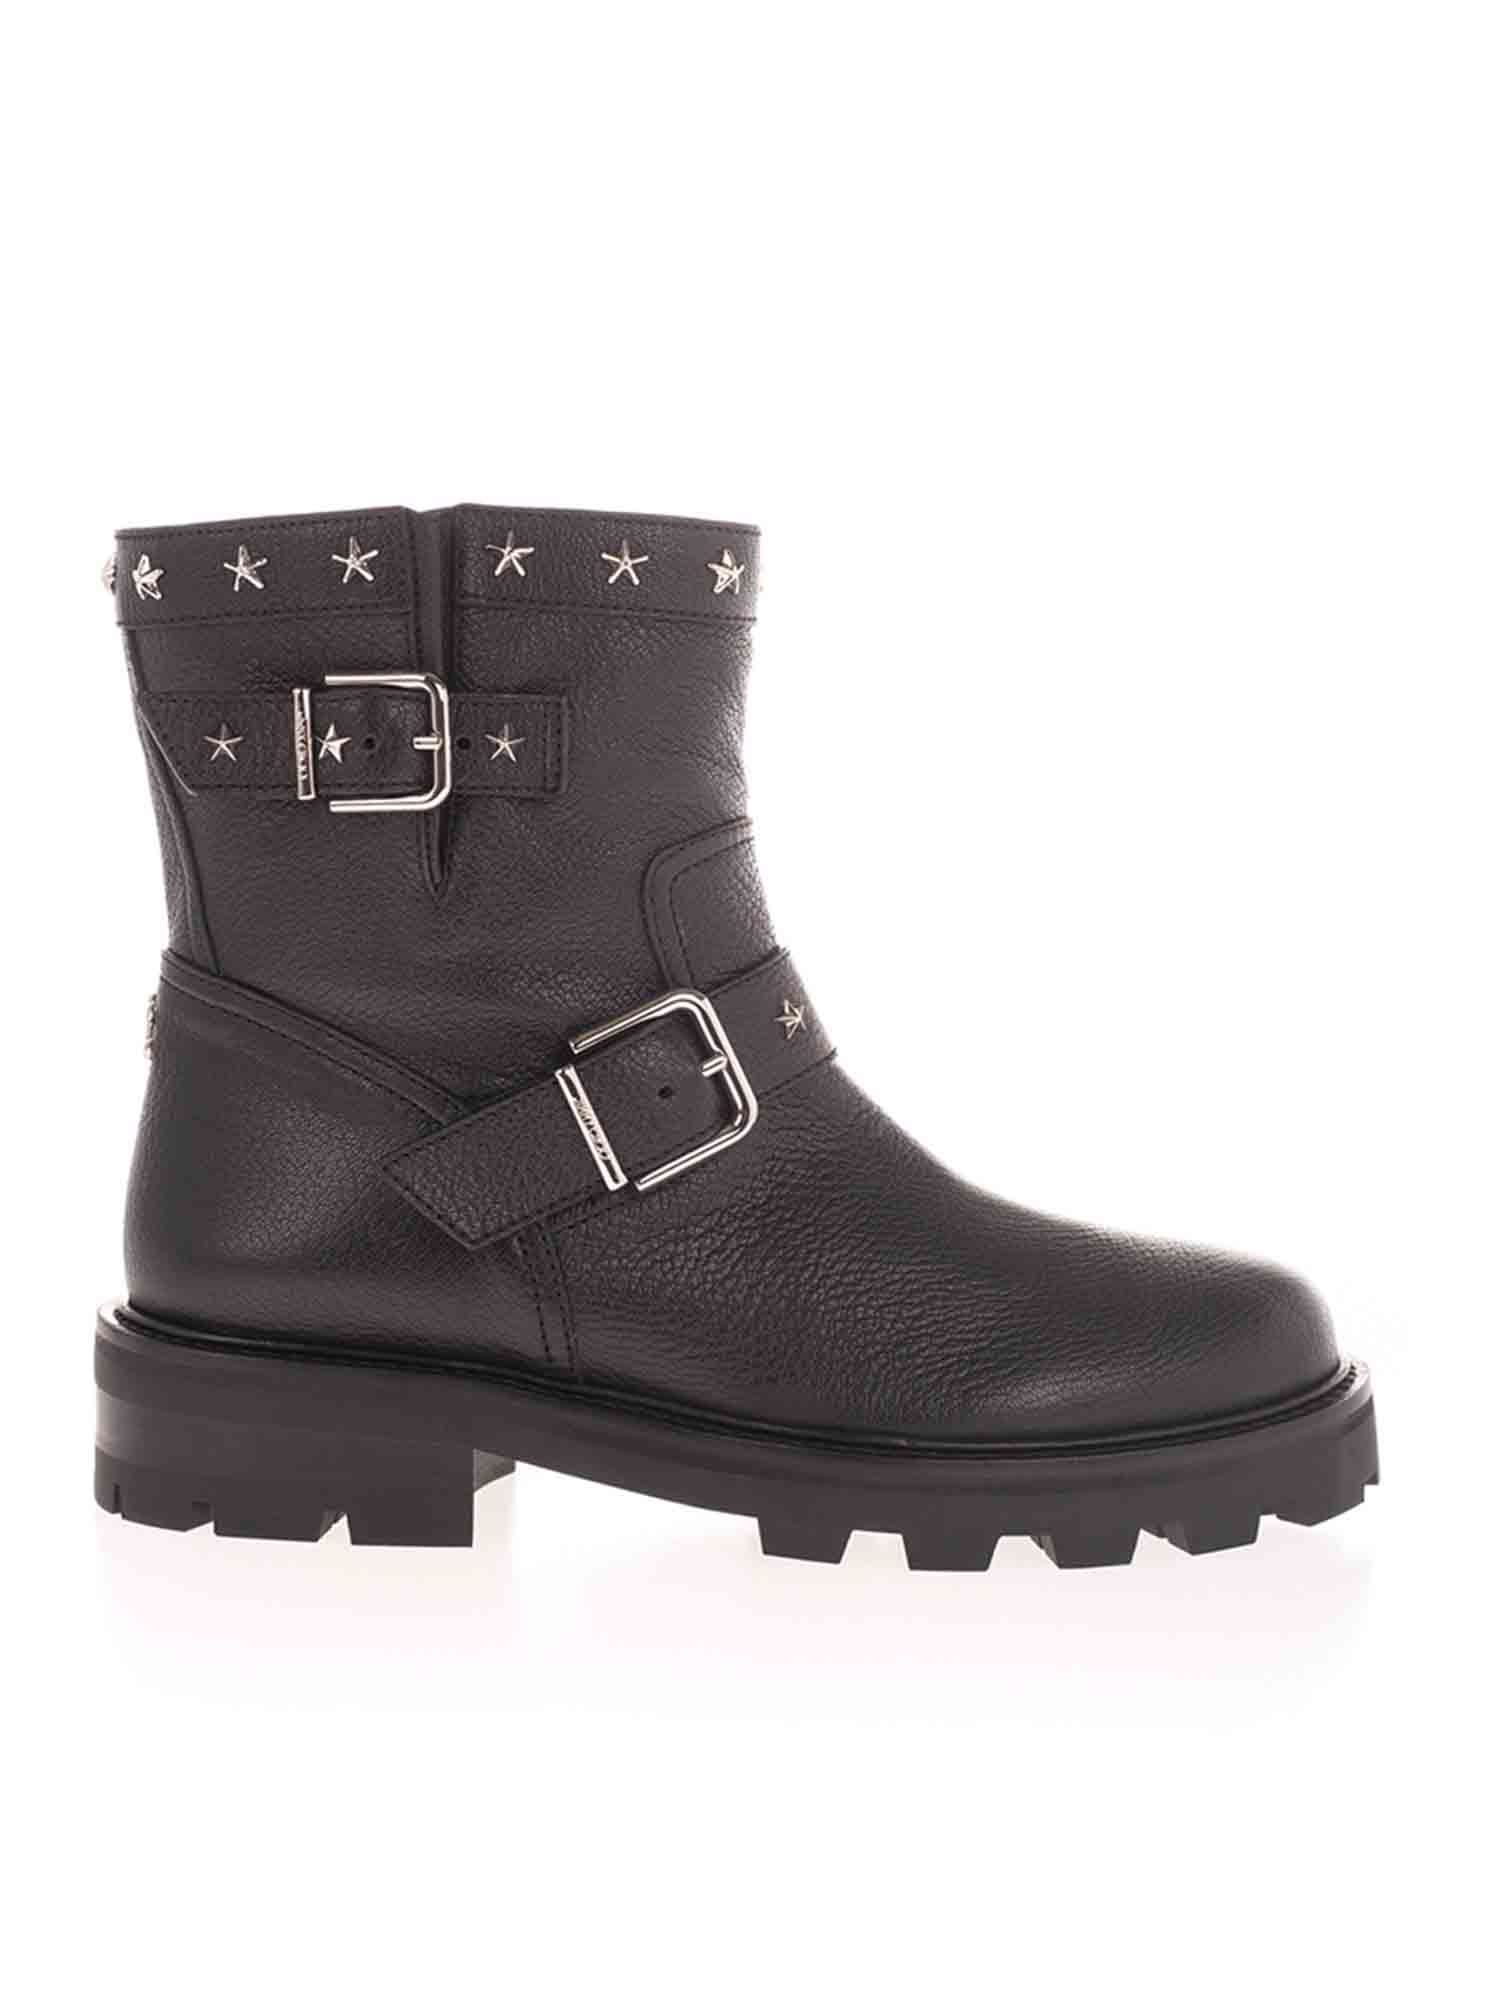 Jimmy Choo Leathers YOUTH STAR ANKLE BOOTS IN BLACK